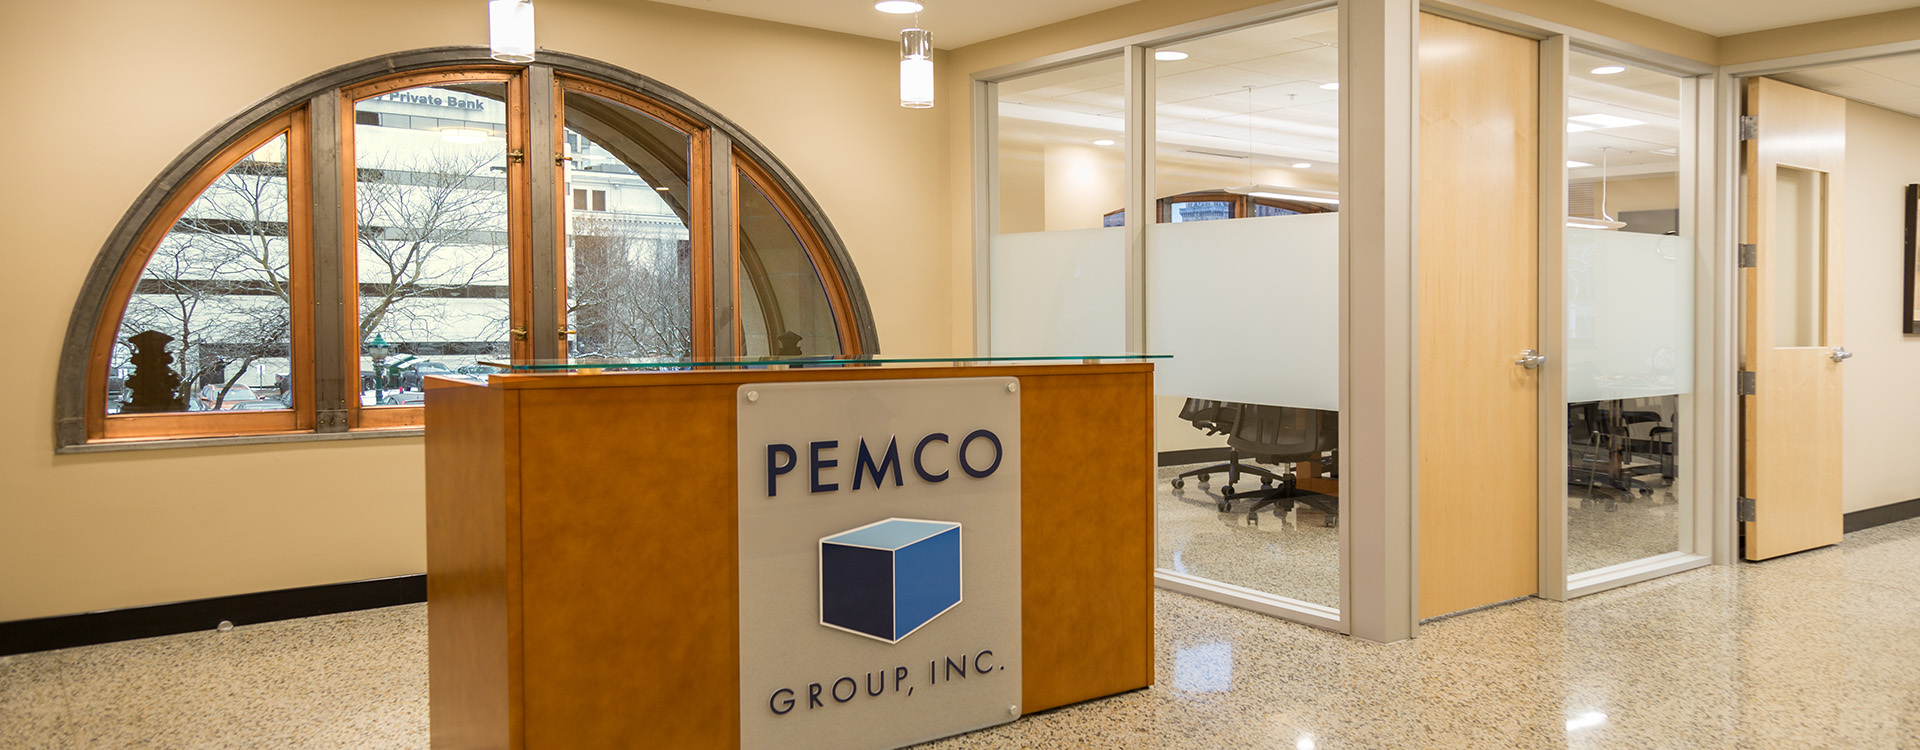 Pemco Group Lobby Area